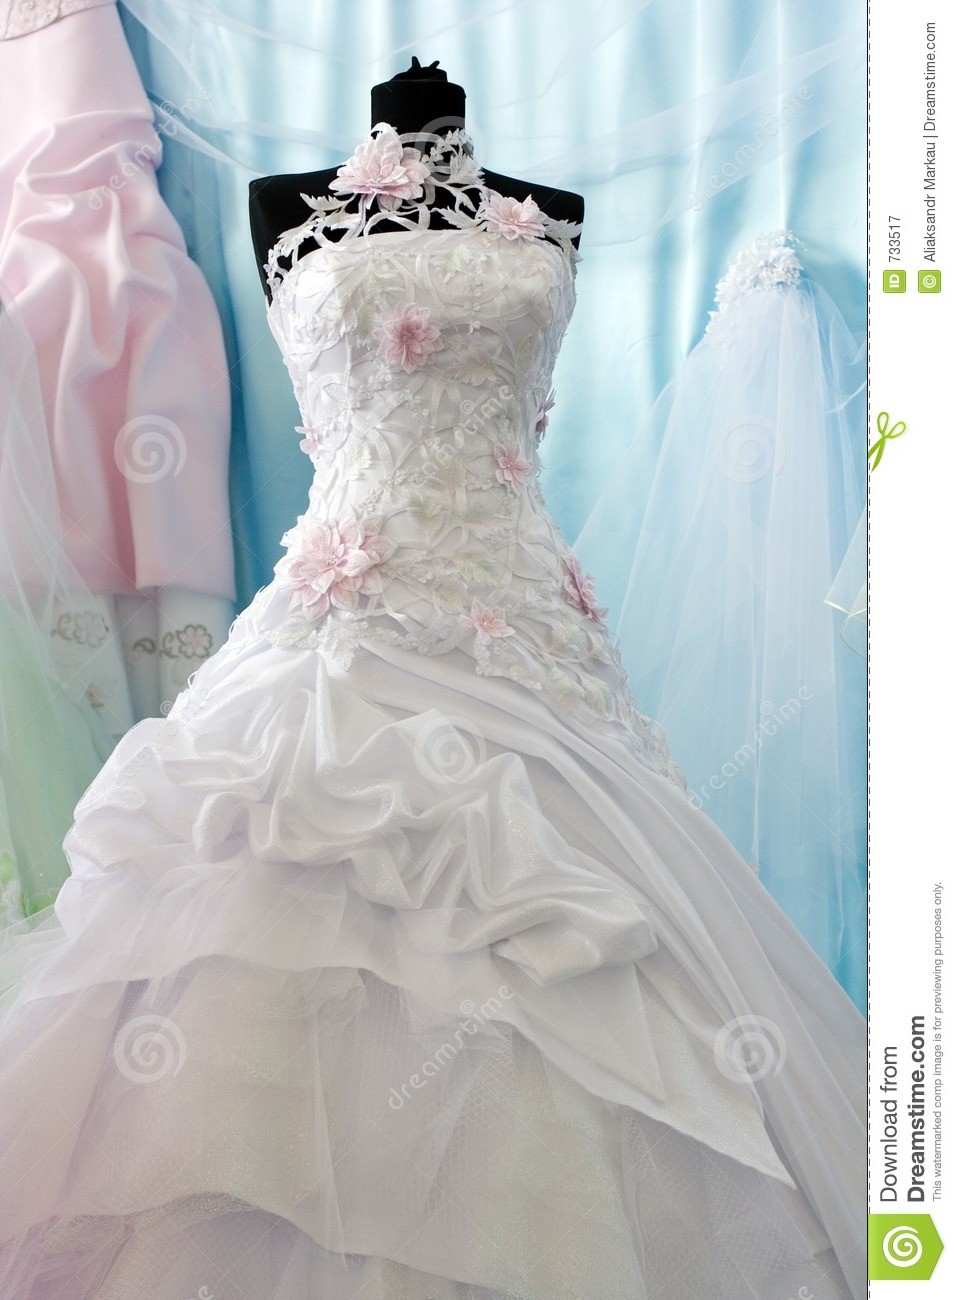 wedding dress stock image image of sale shoppe gown 733517